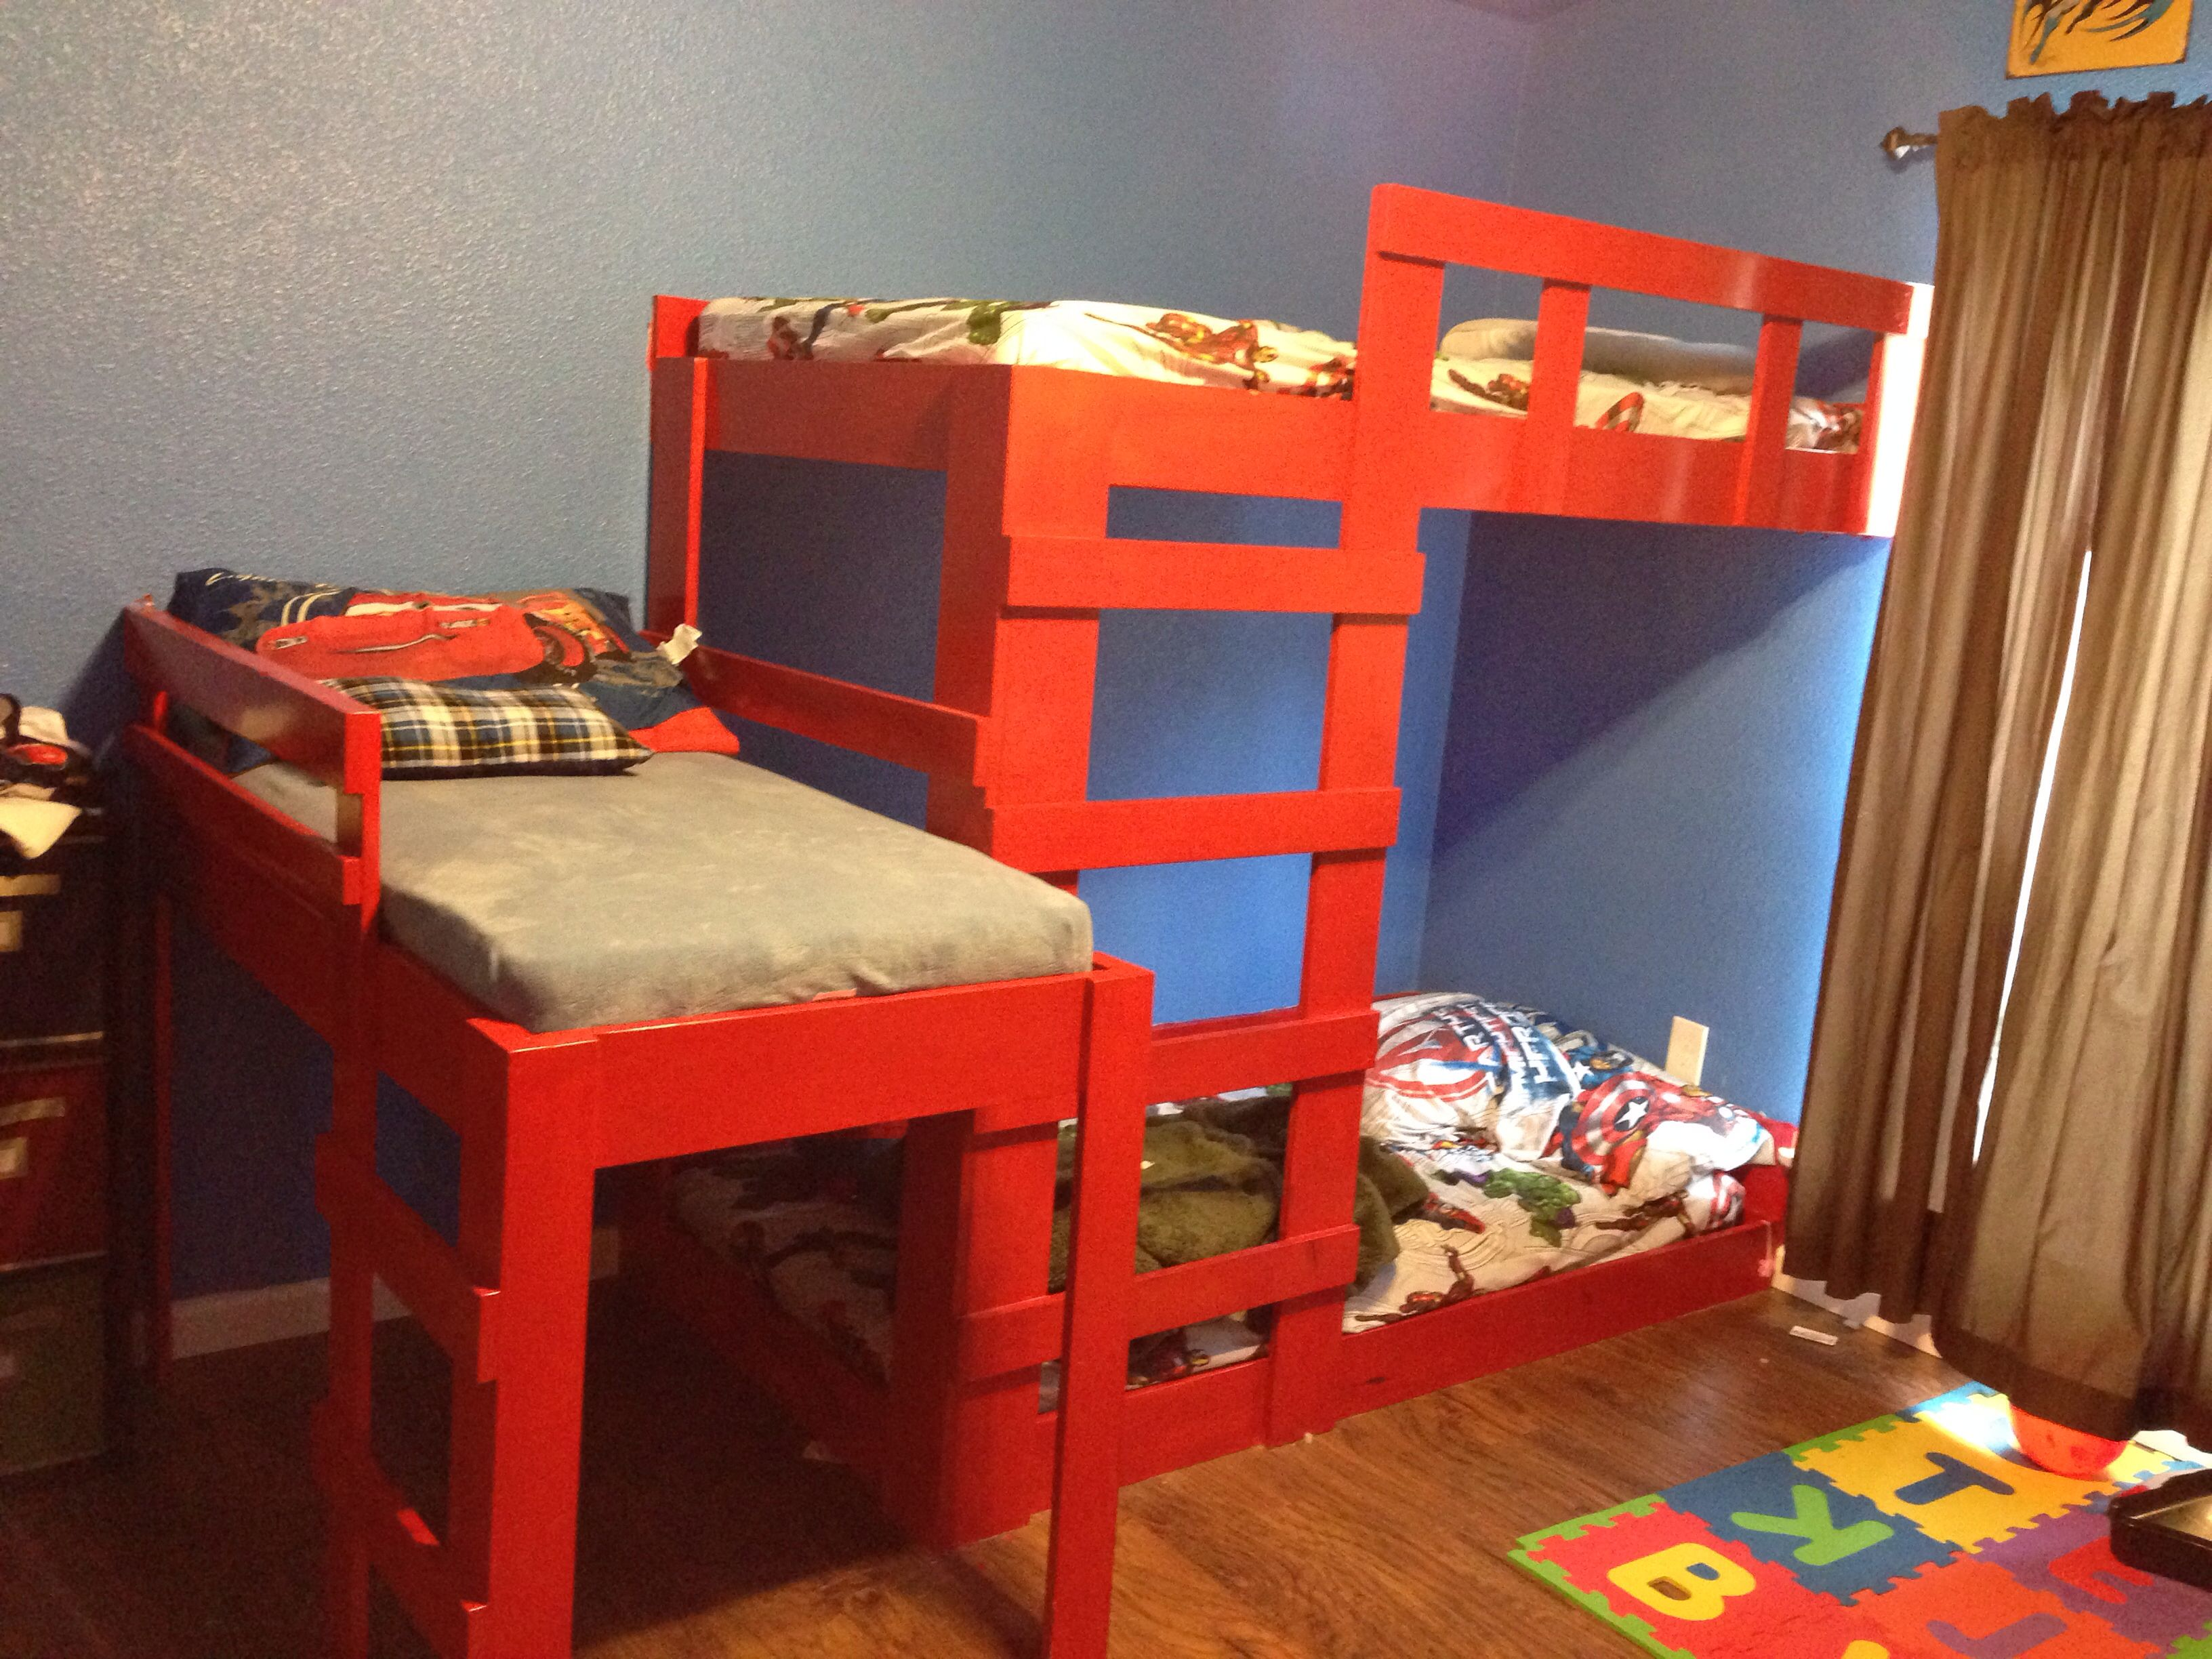 Bunk beds for girls and boys - Diy Bunk Bed For 3 Boys Or 3 Girls Since We Aren T Sure What